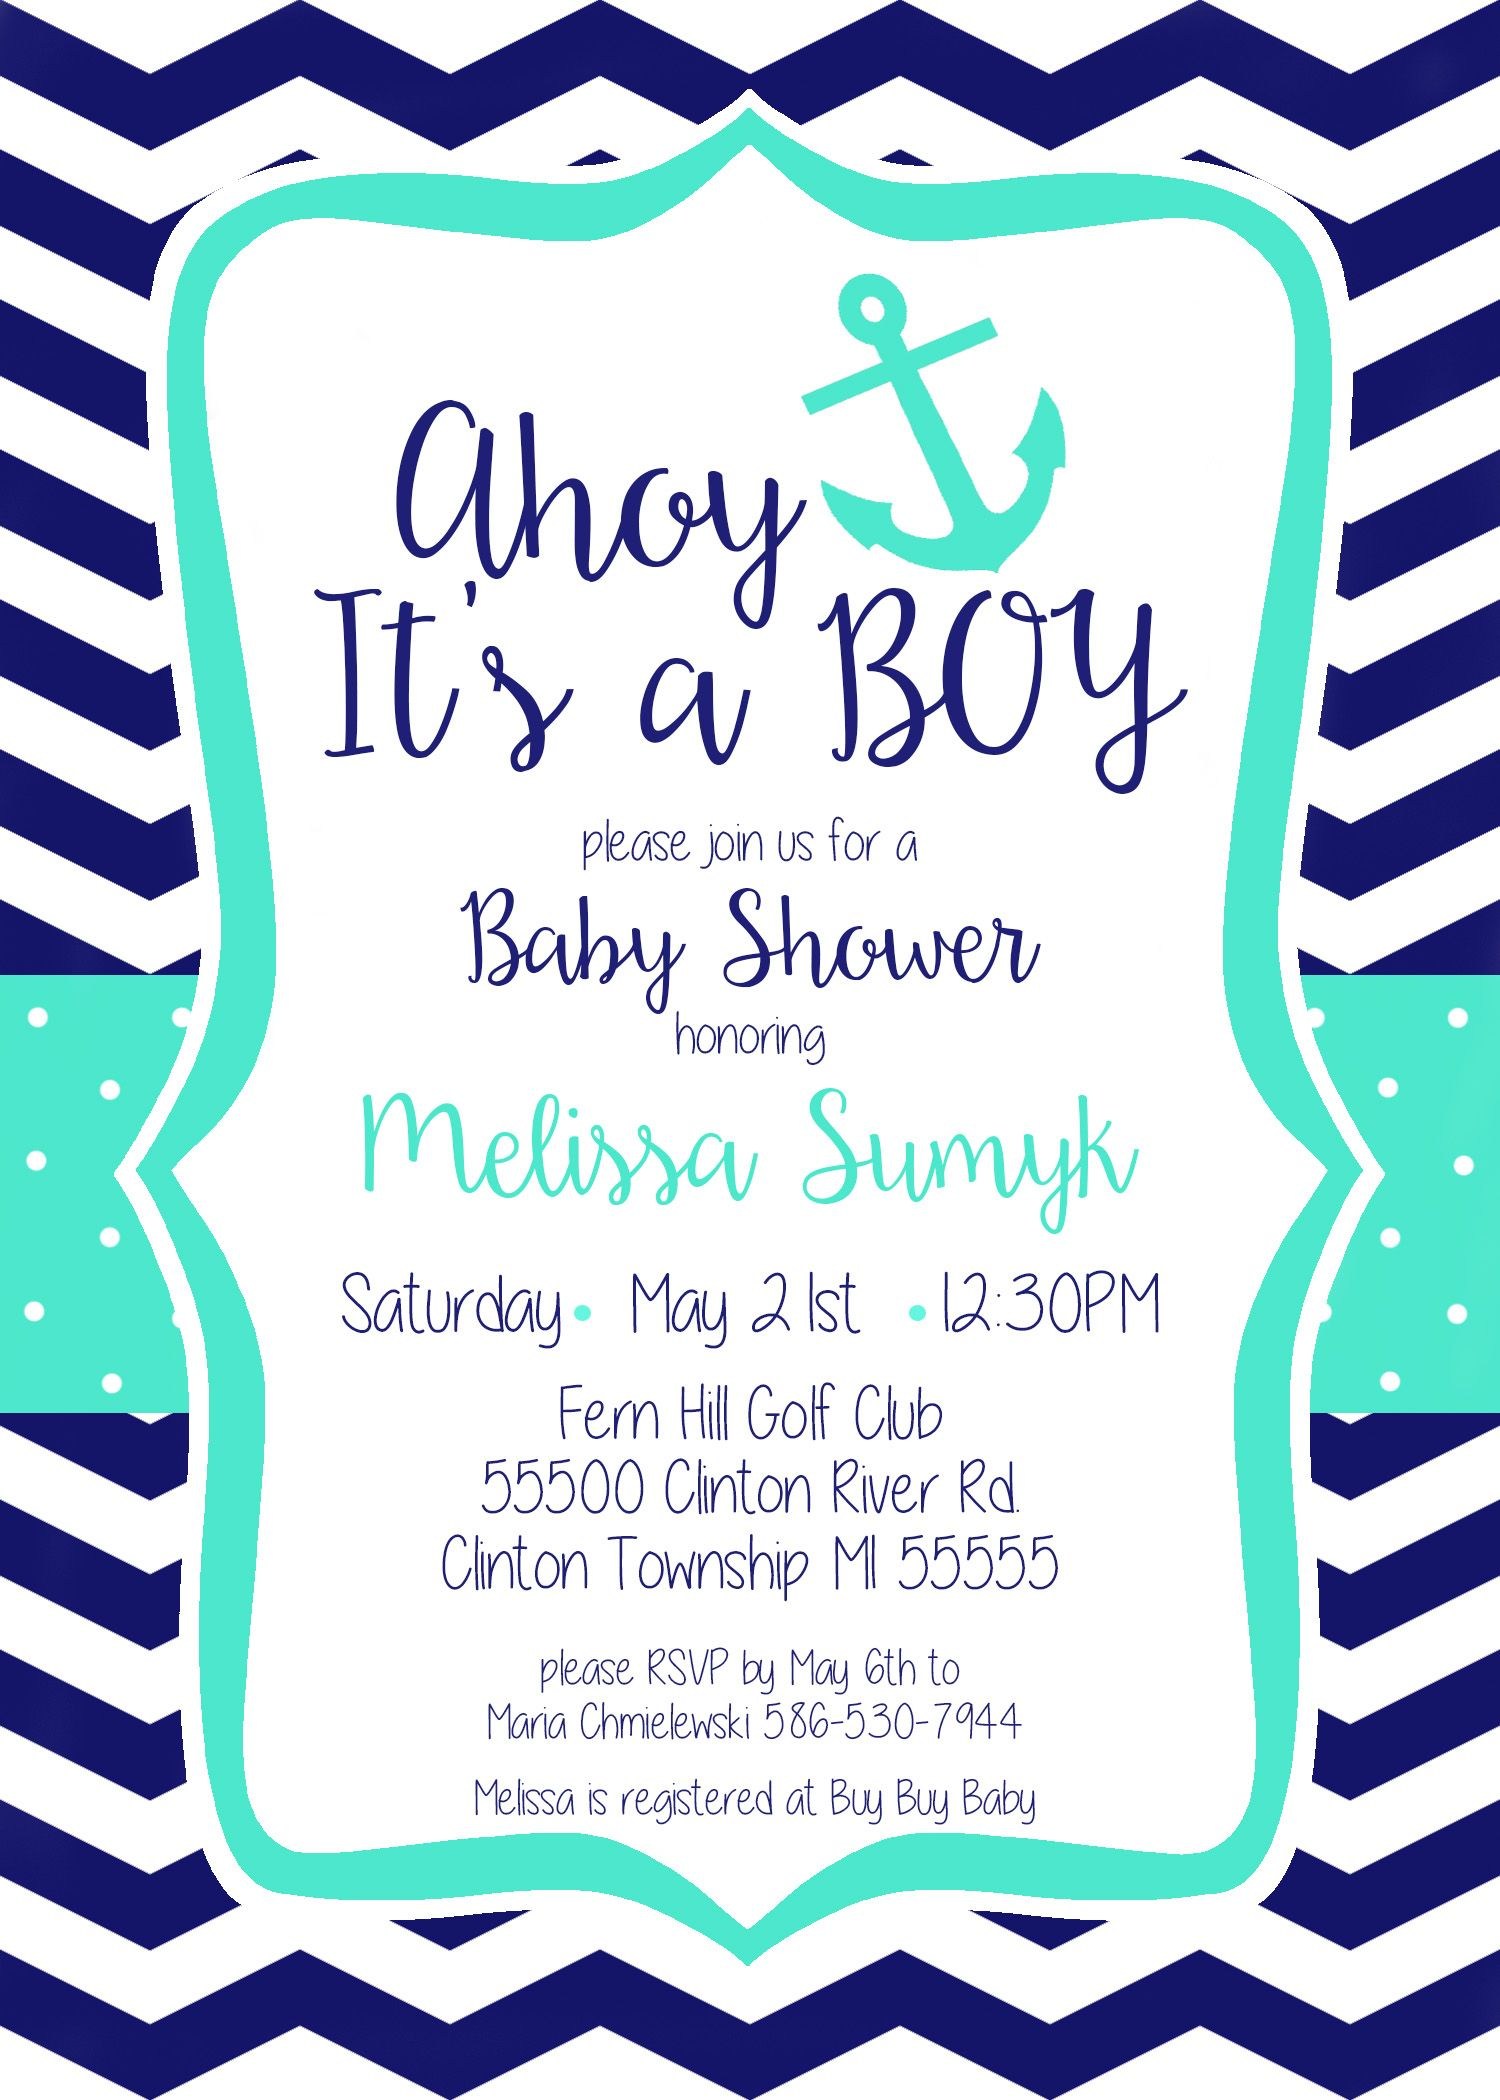 picture regarding Nautical Baby Shower Invitations Printable called Ahoy, Its A Boy!! Nautical themed kid shower invitation